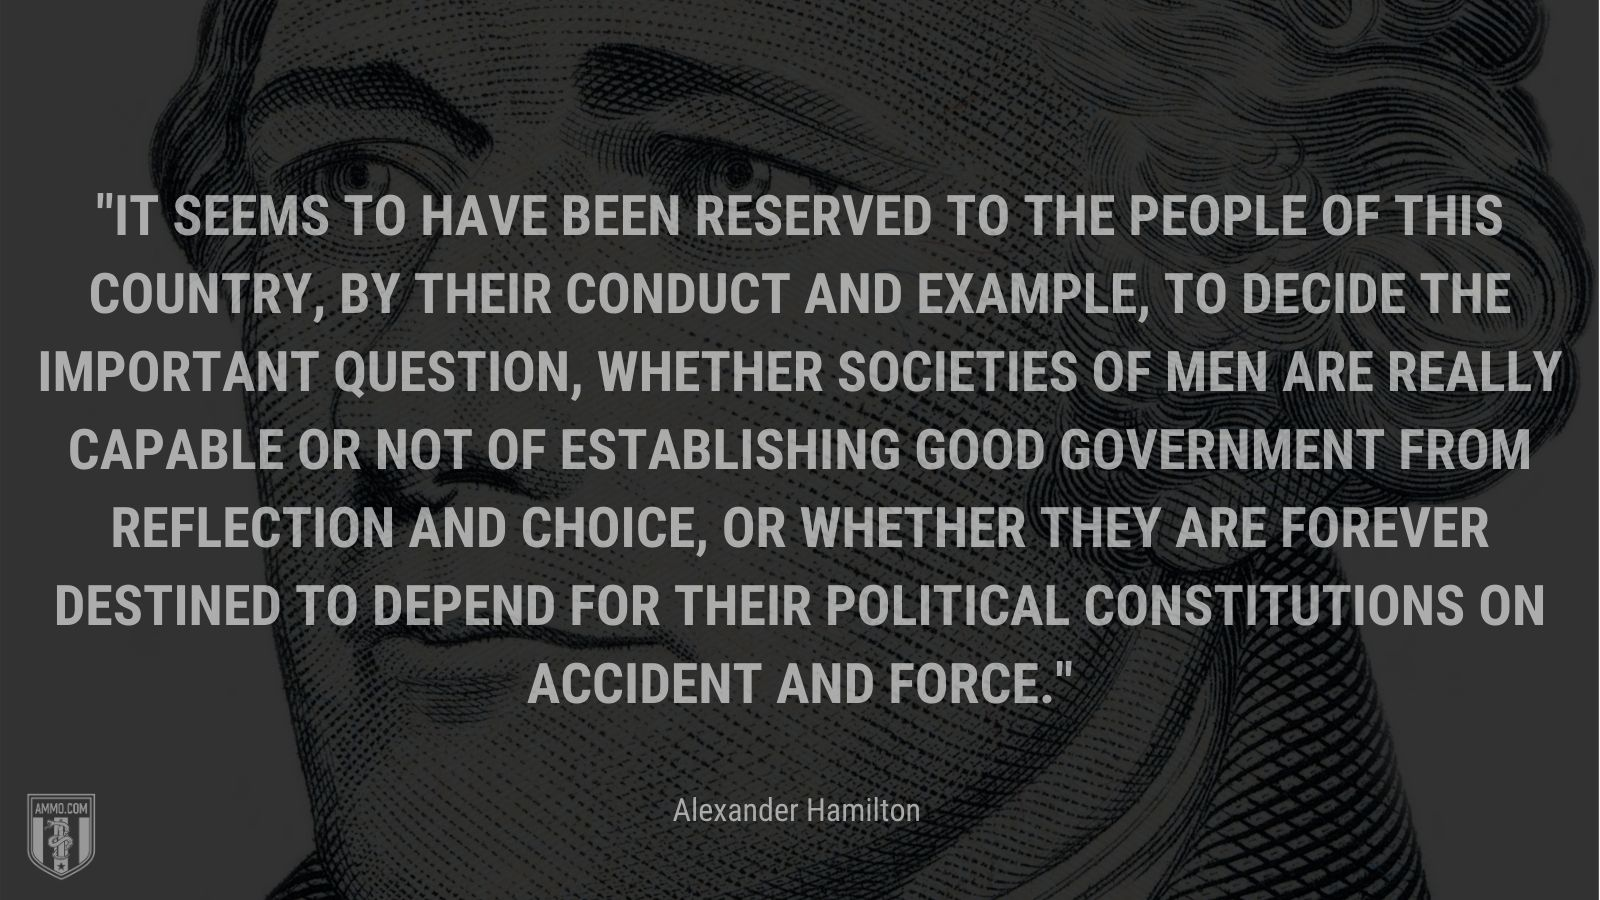 """""""It seems to have been reserved to the people of this country, by their conduct and example, to decide the important question, whether societies of men are really capable or not of establishing good government from reflection and choice, or whether they are forever destined to depend for their political constitutions on accident and force."""" - Alexander Hamilton"""